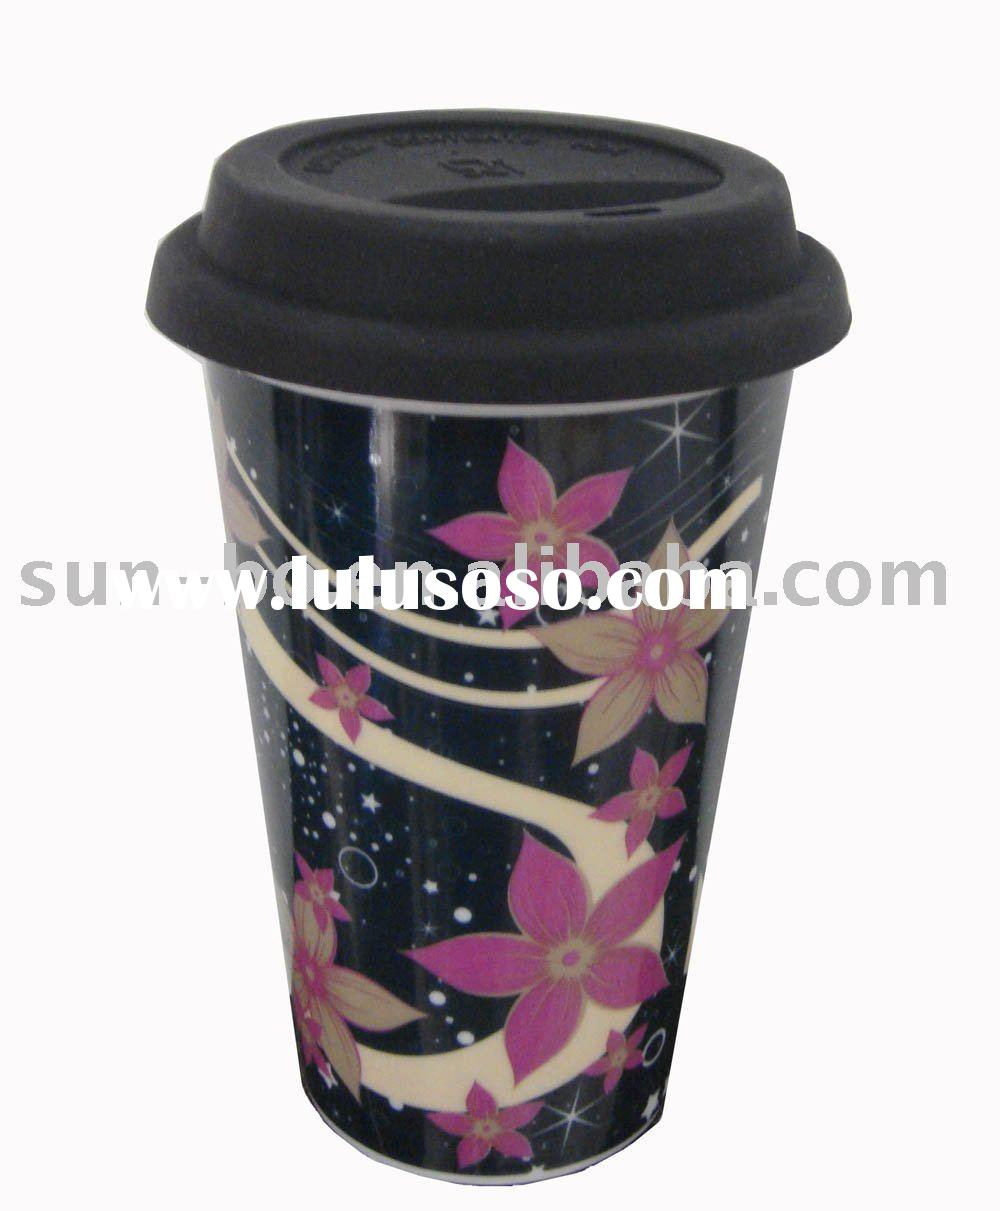 Doublewall eco cup with silicon lid and pad